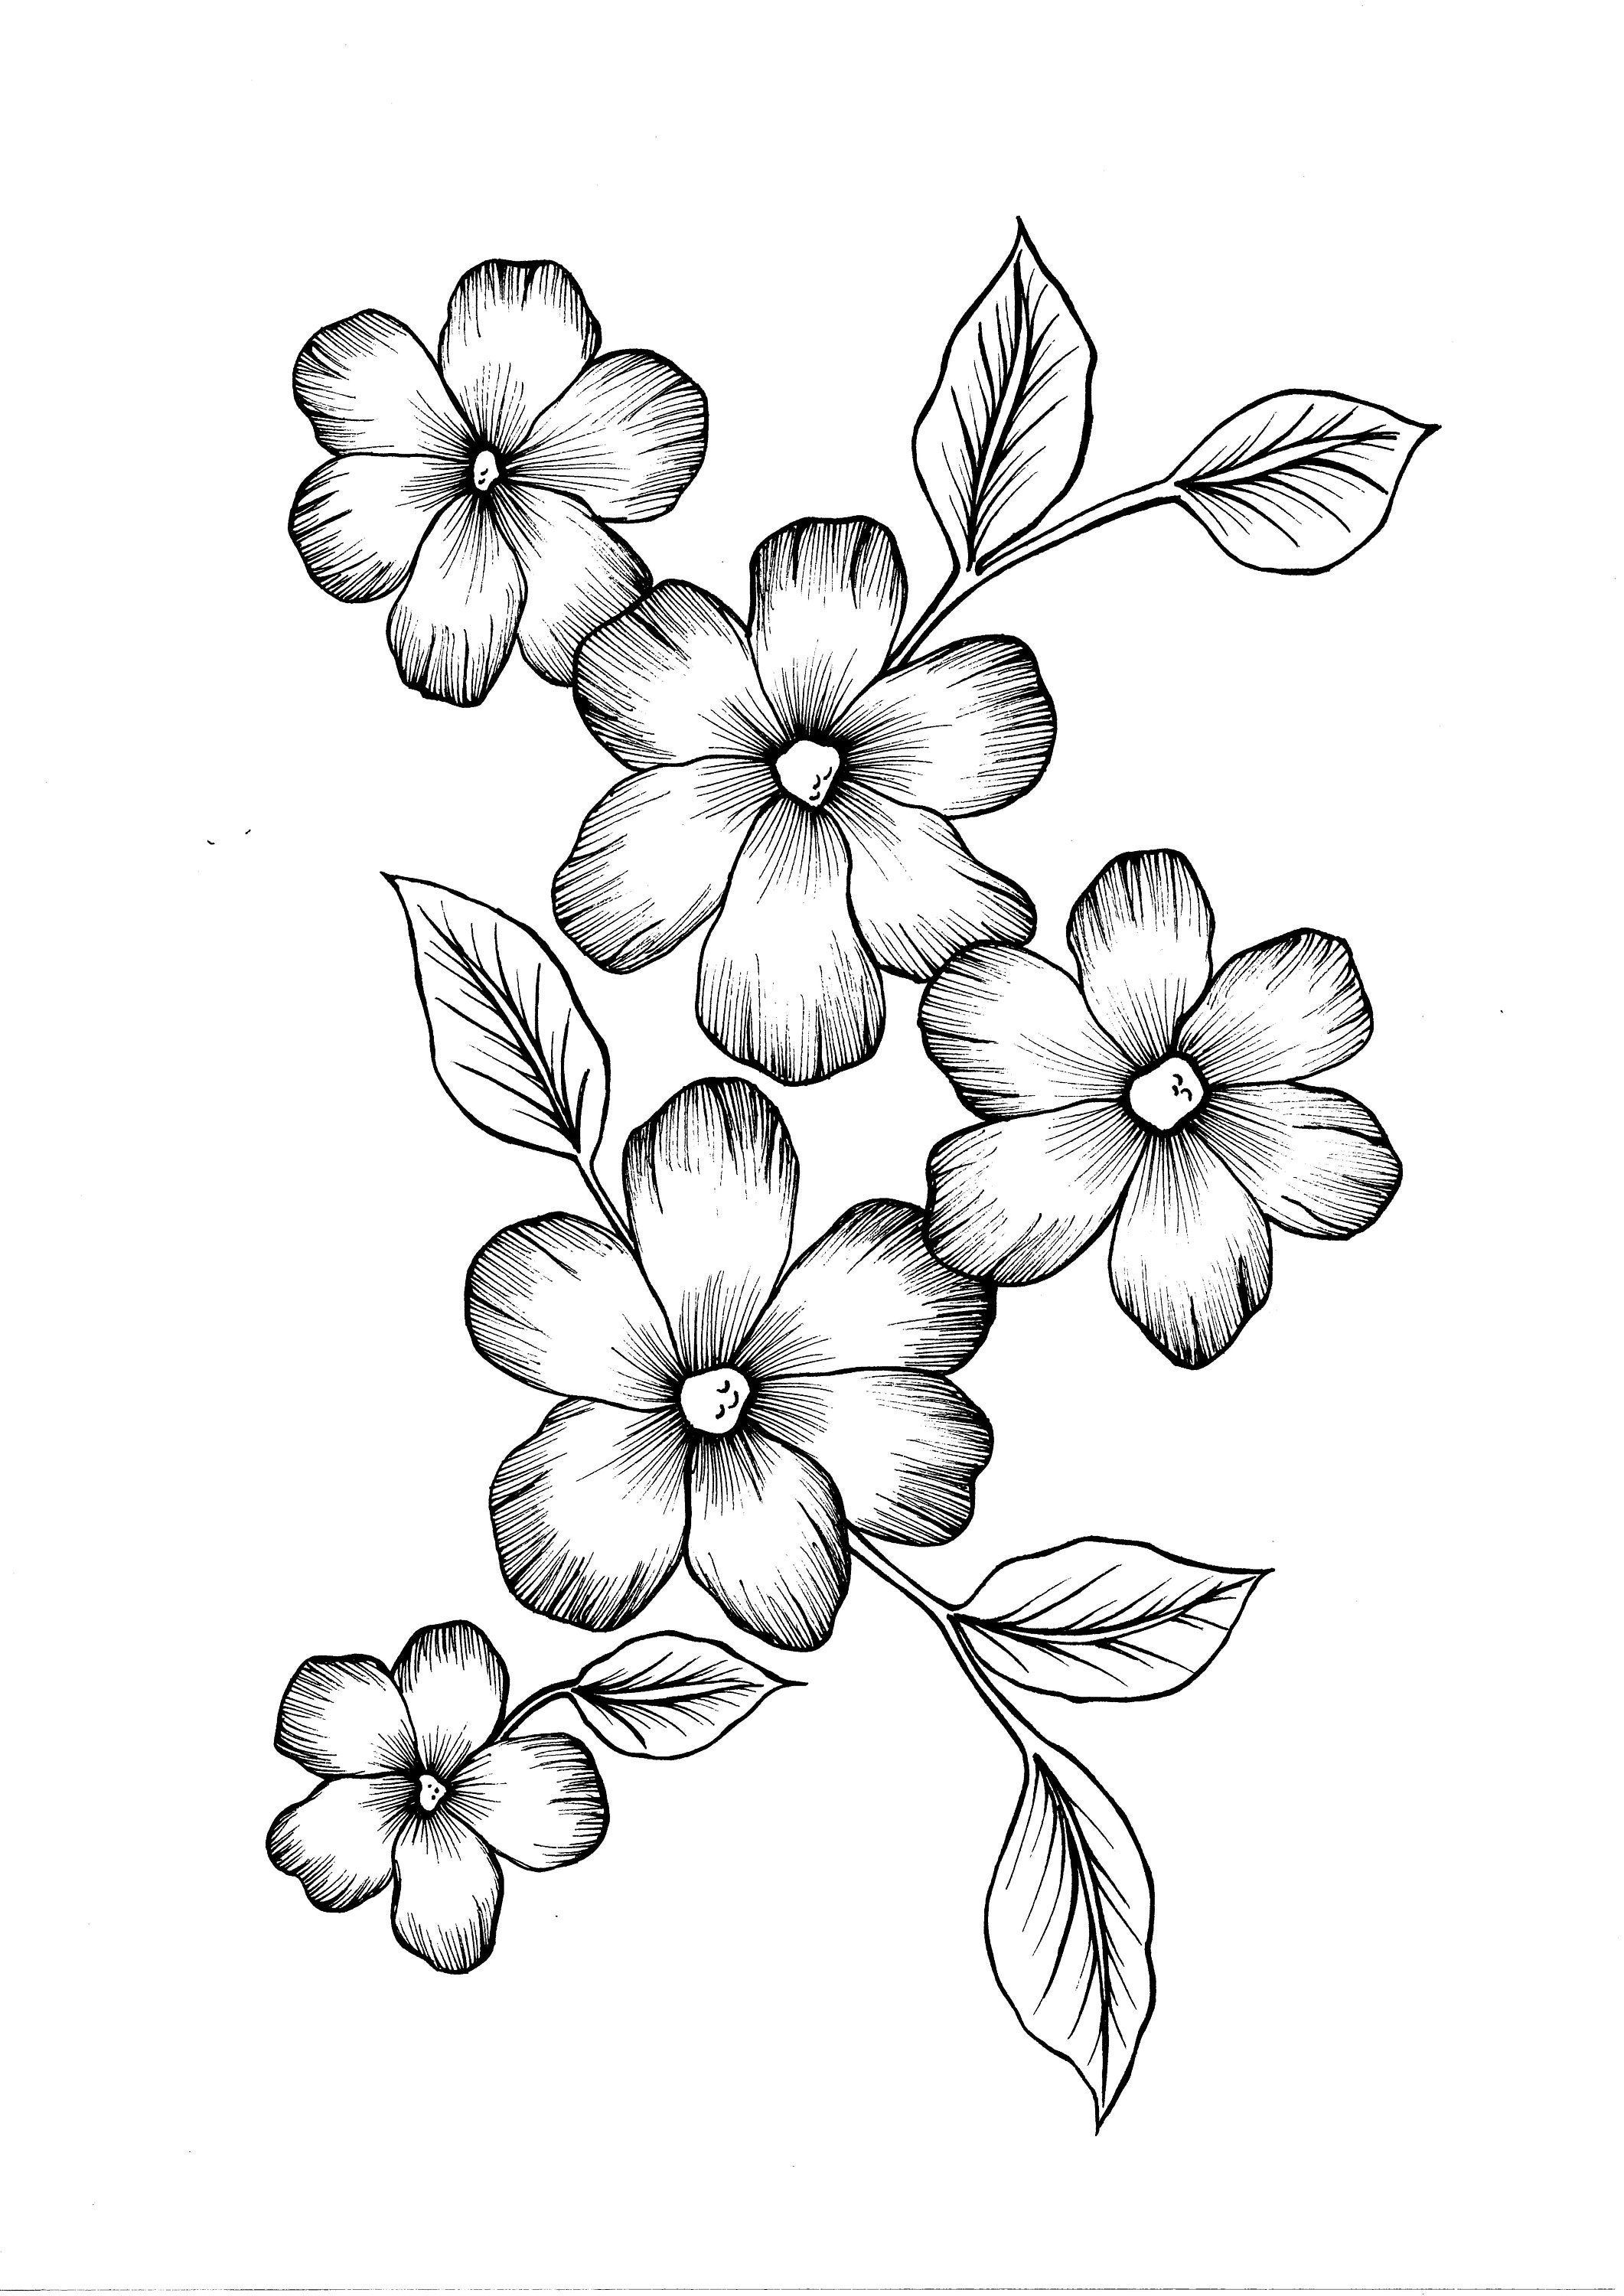 Wild Flowers Pdf Coloring Page In 2020 Flower Art Drawing Flower Pattern Drawing Easy Flower Drawings